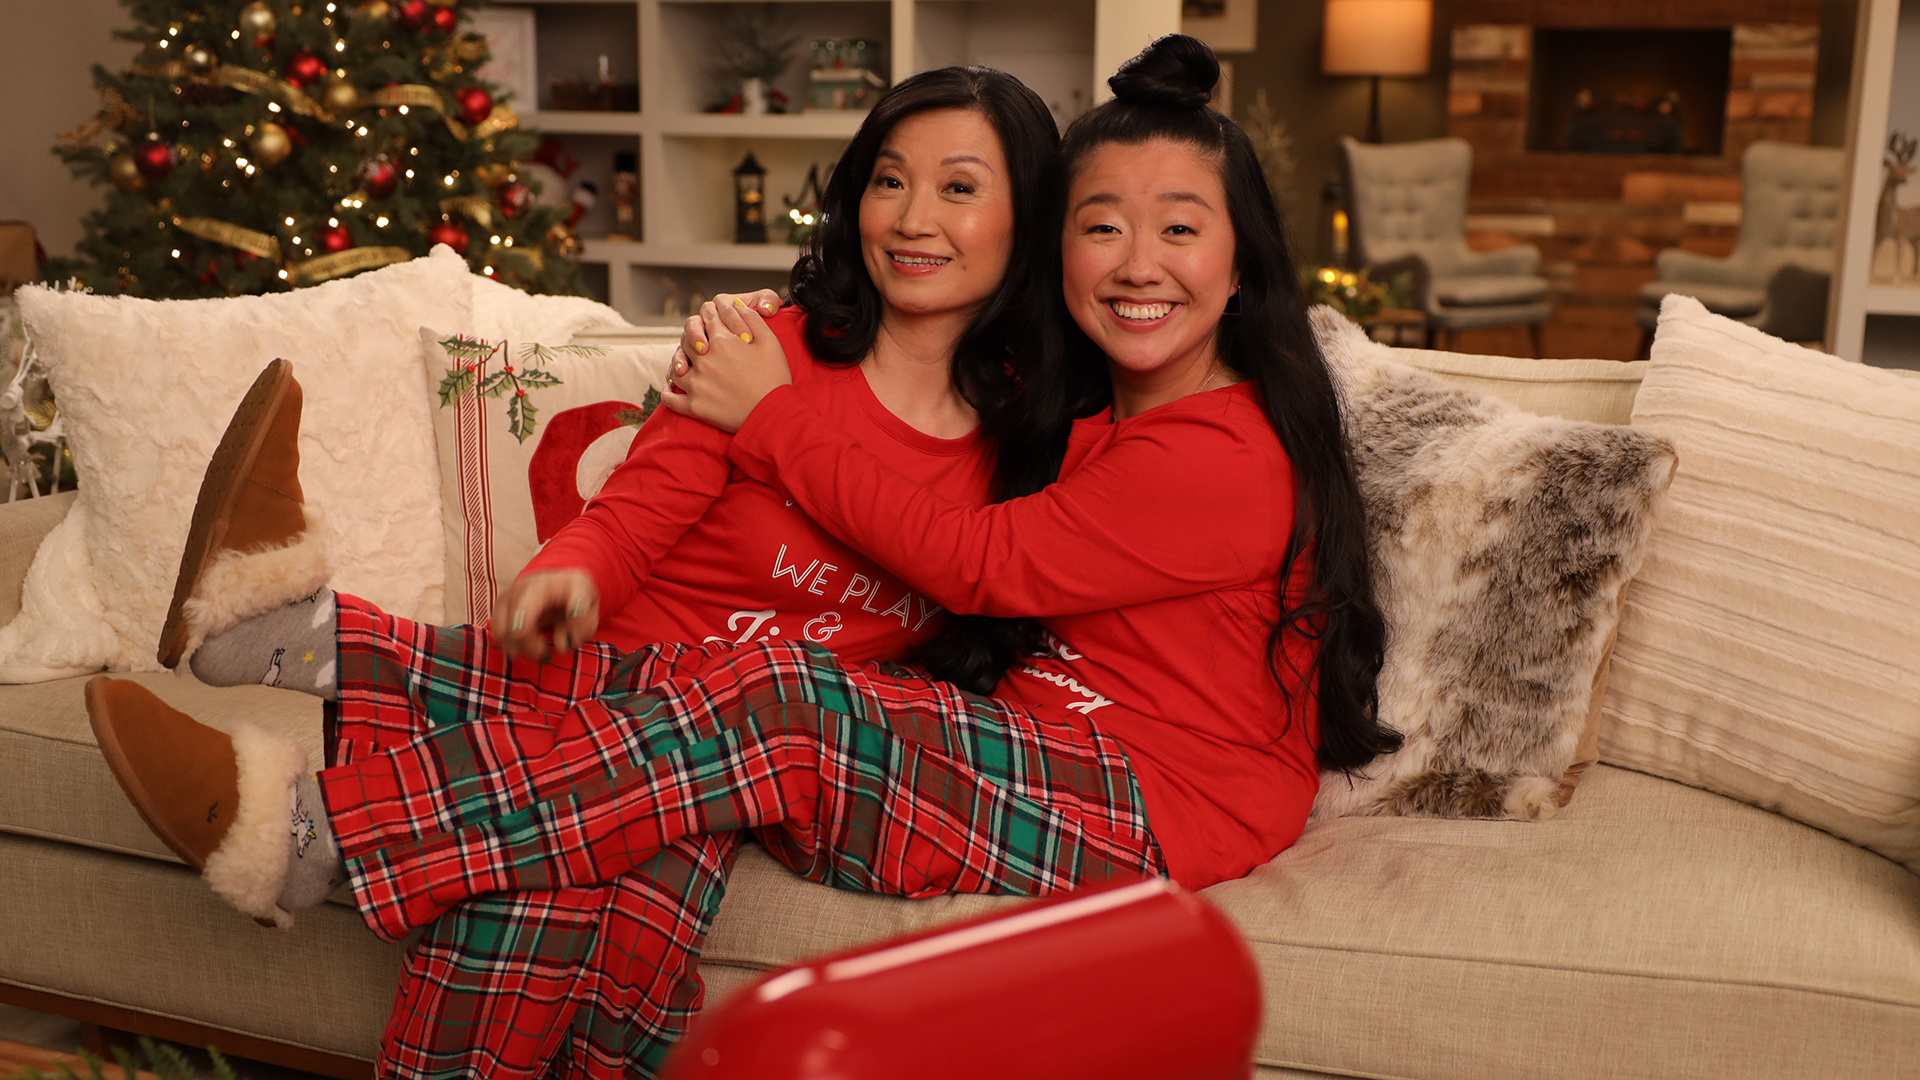 an asian mom and her daughter sitting on a couch dressed in red and hugging